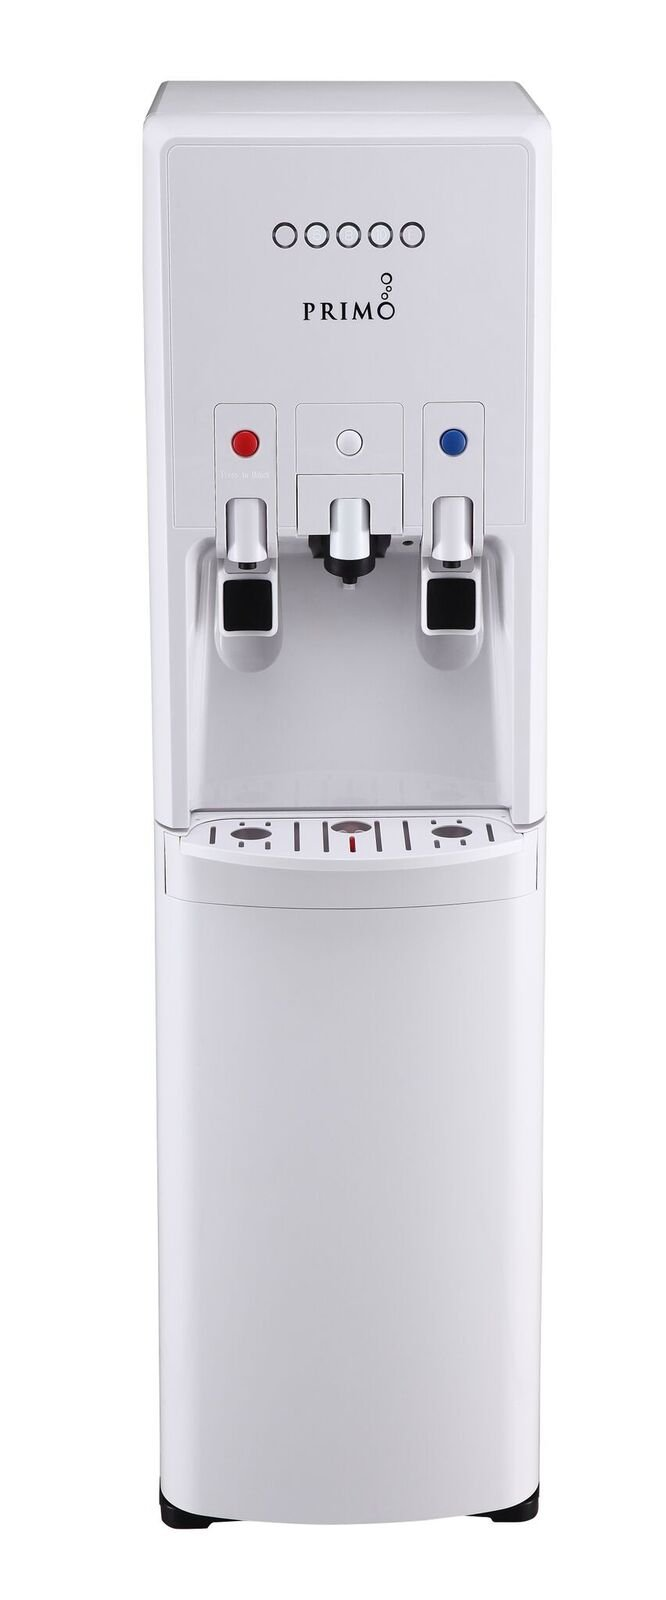 Primo hTRiO Bottom Loading Water Cooler with Single Serve Brewing - 2 Temperature Settings, Hot, Cold - K-Cup Compatible Water Dispenser - Supports 3 or 5 Gallon Water Jugs [White]